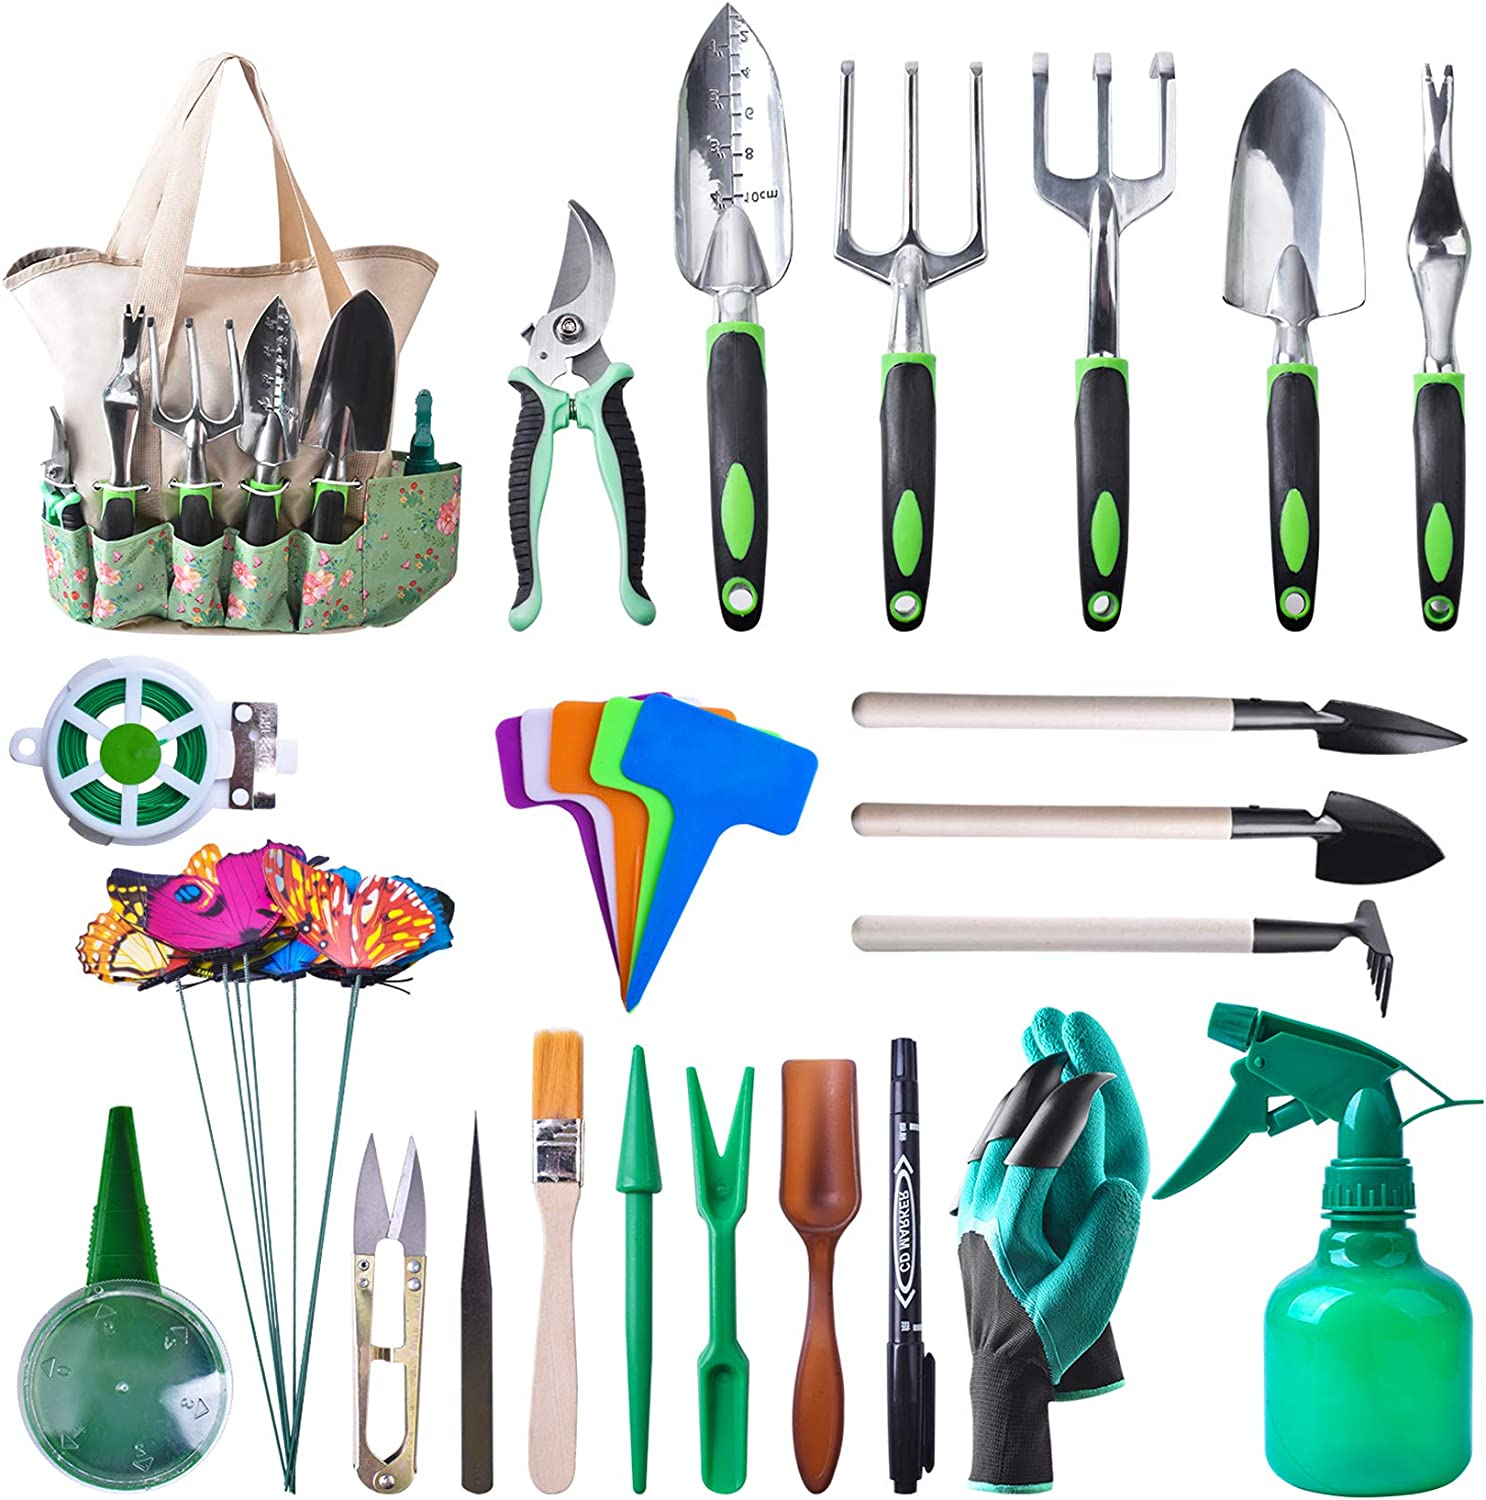 ETEPON Garden Tools Set, 50 Pieces Heavy Duty Gardening Tools with Soft Rubberized Non-Slip Handle Tools, Aluminum Outdoor Hand Tools with Garden Gloves and Handbag- Gardening Gifts for Women